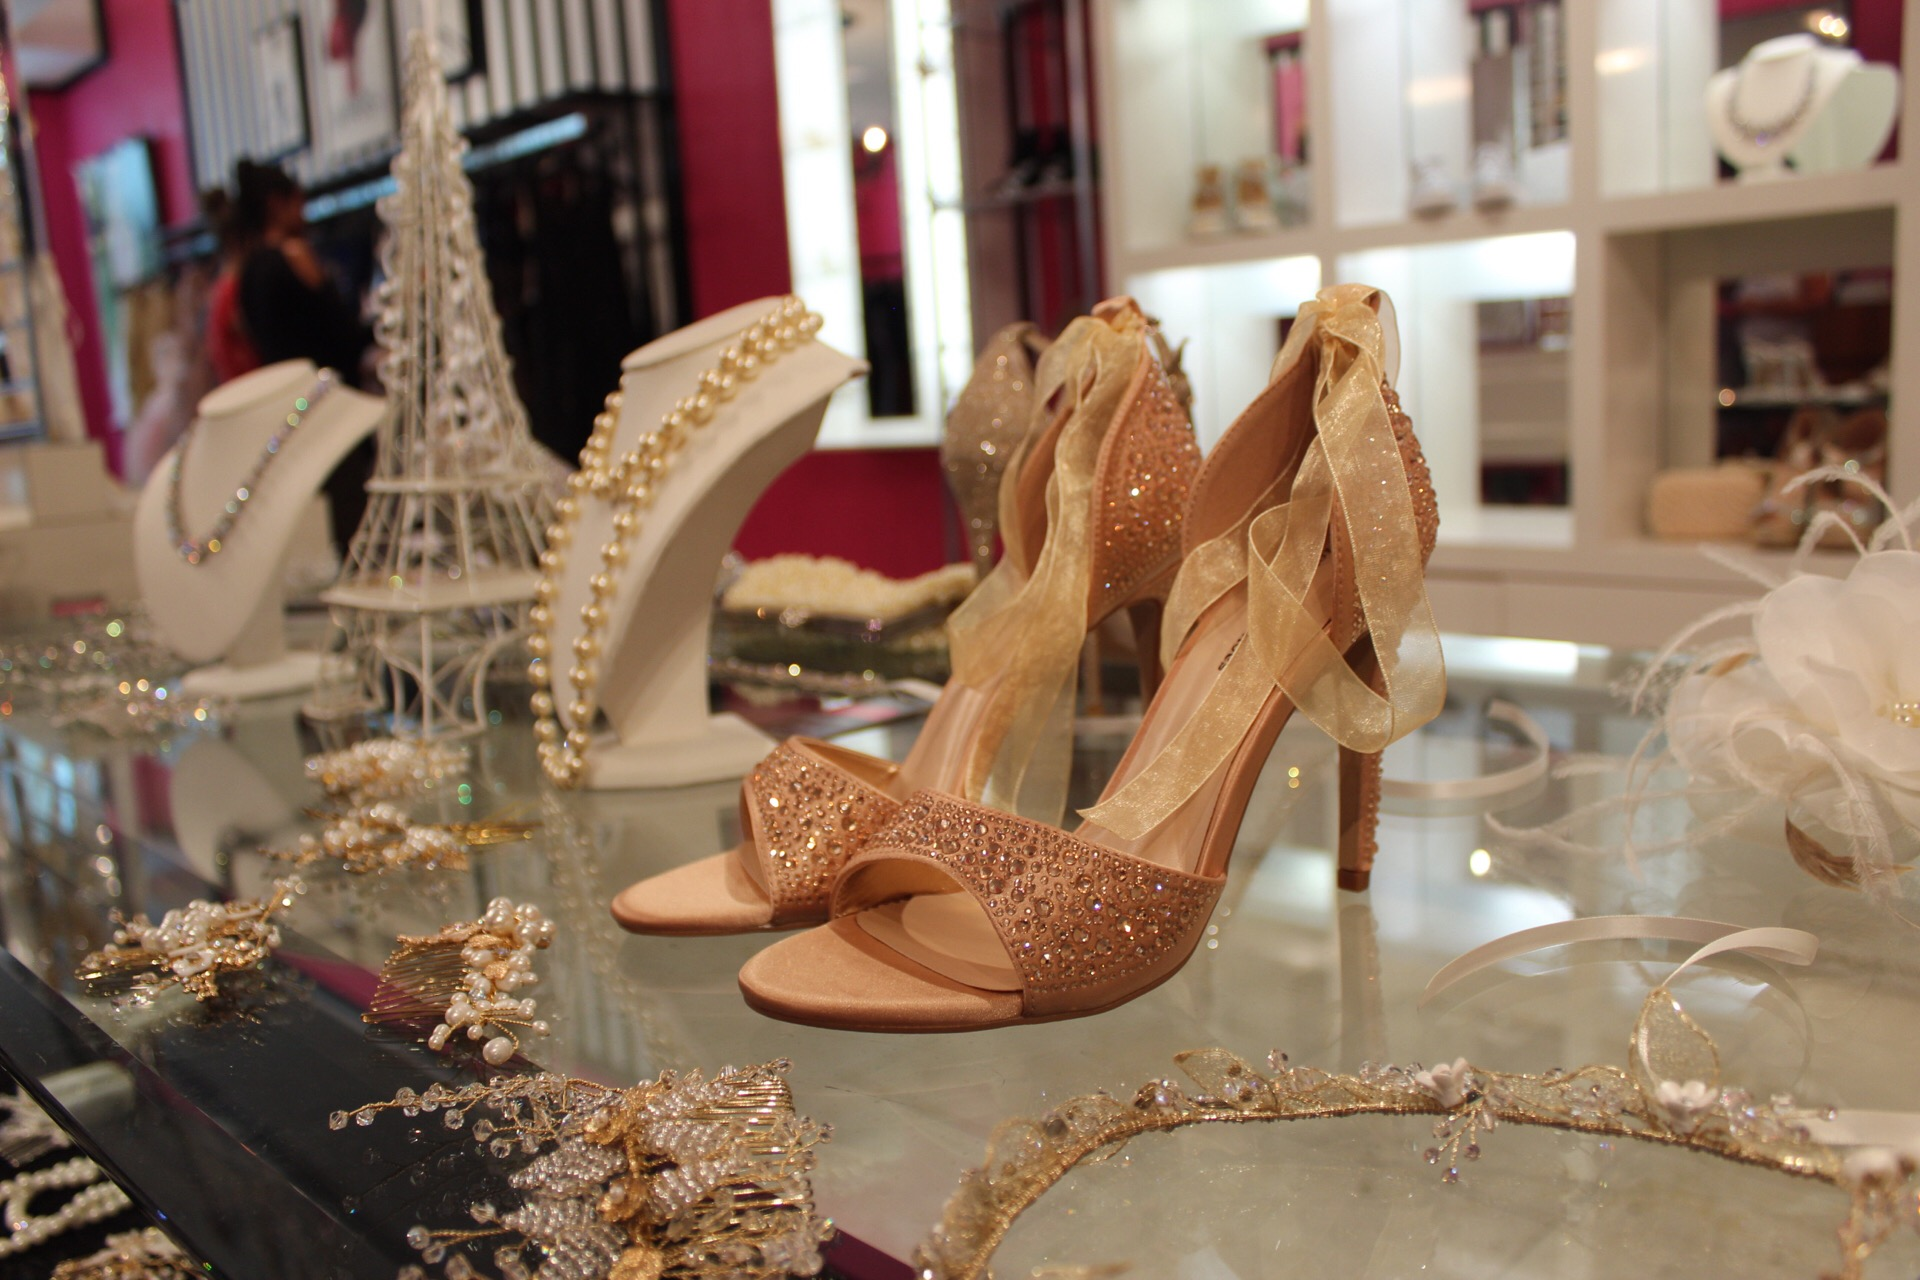 We do more than just dresses here at DressHaute! We have shoes, jewelry, veils, and more!